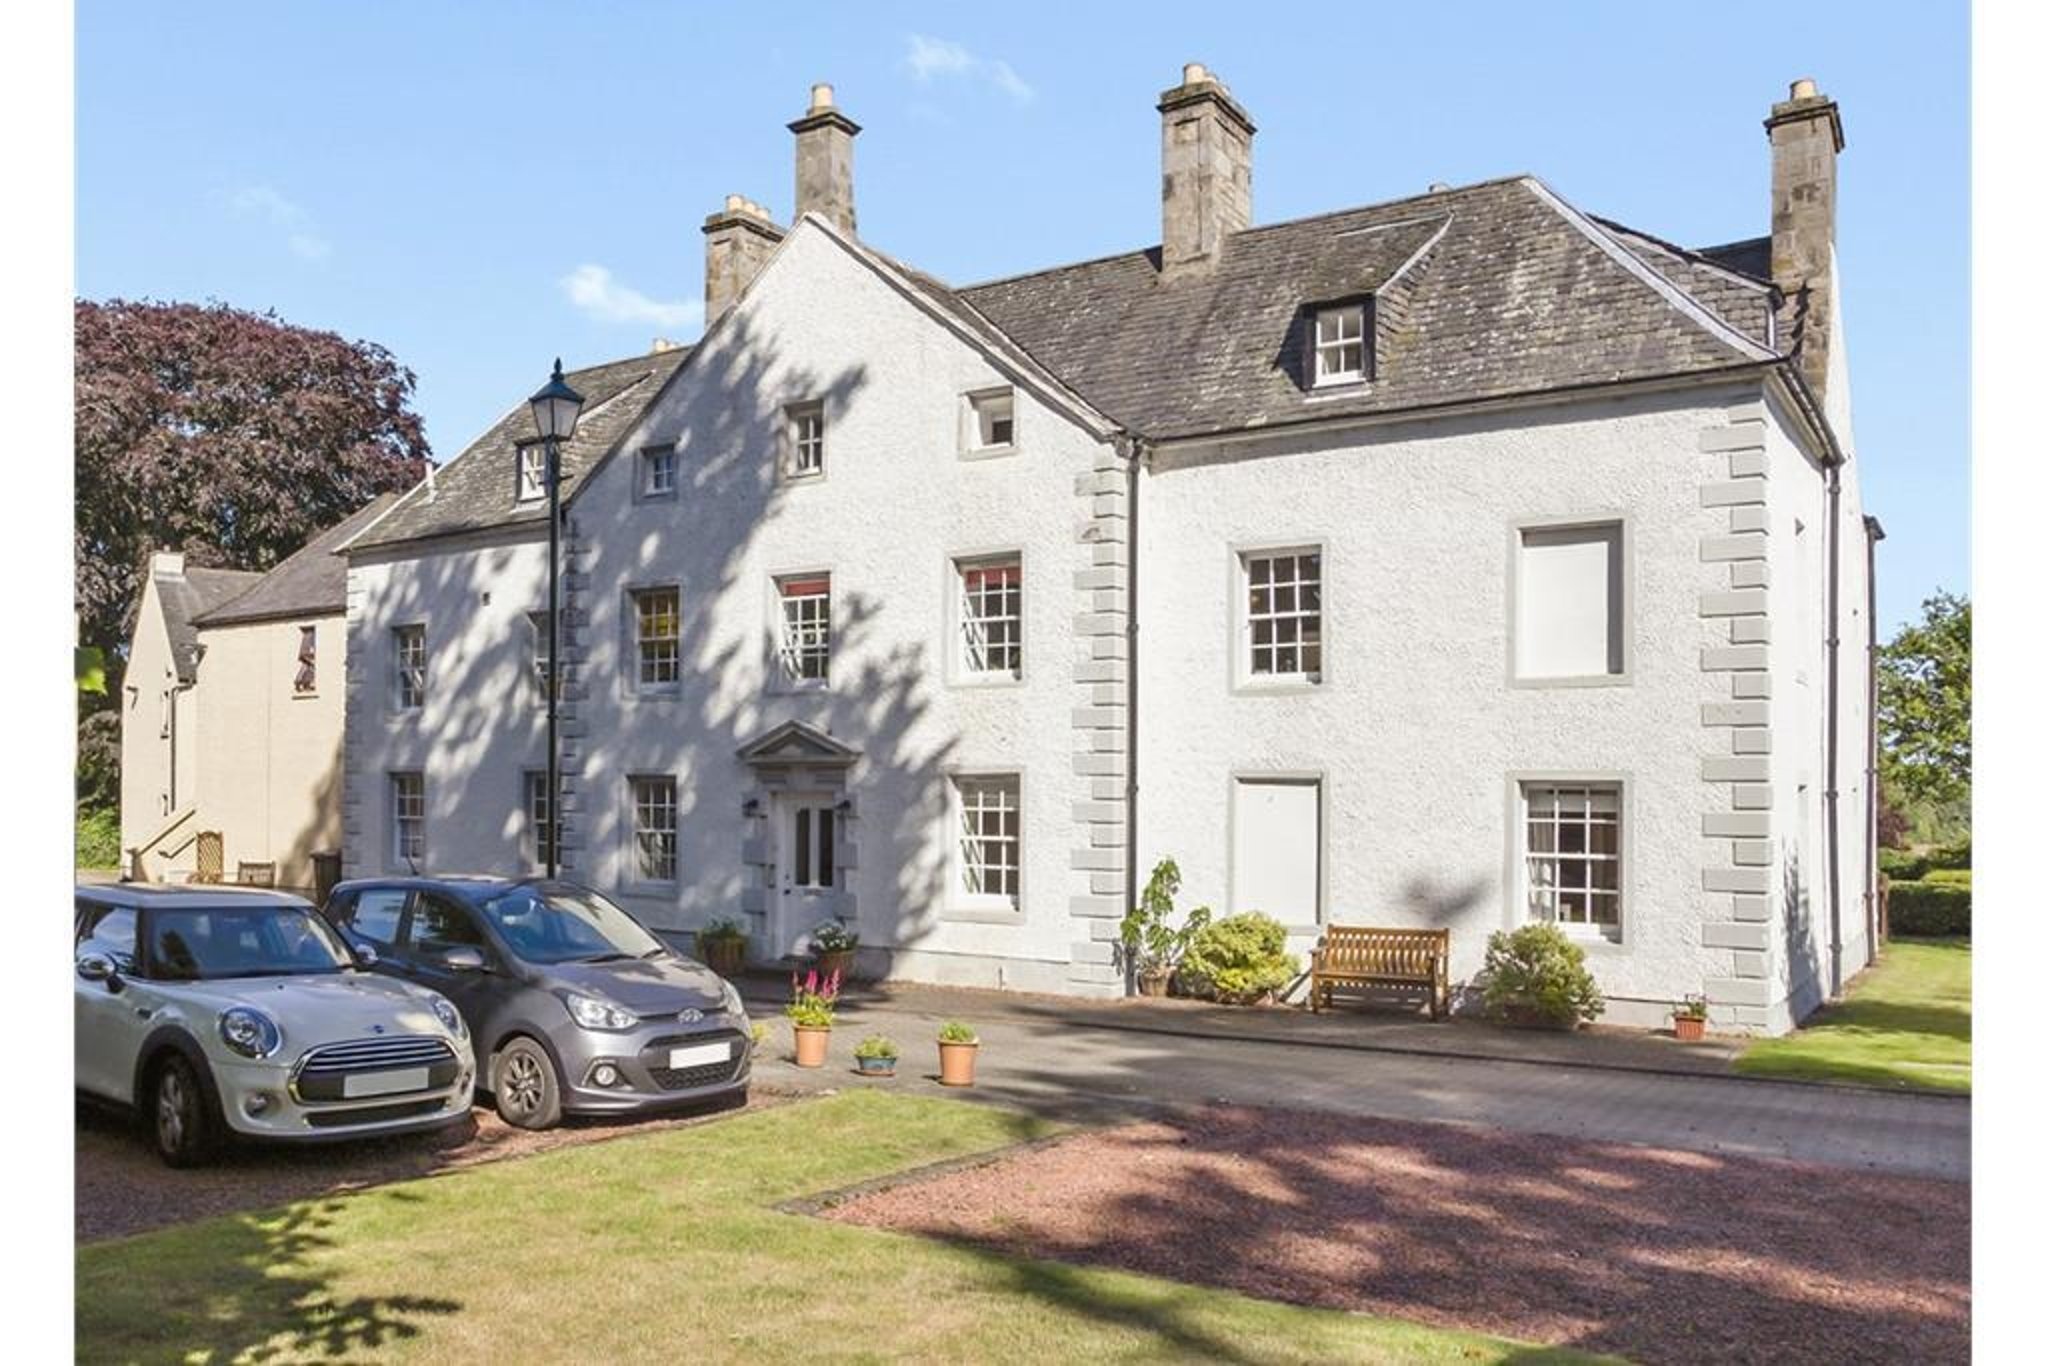 Fife property: Immaculate 5-bedroom period townhouse with a fascinating history